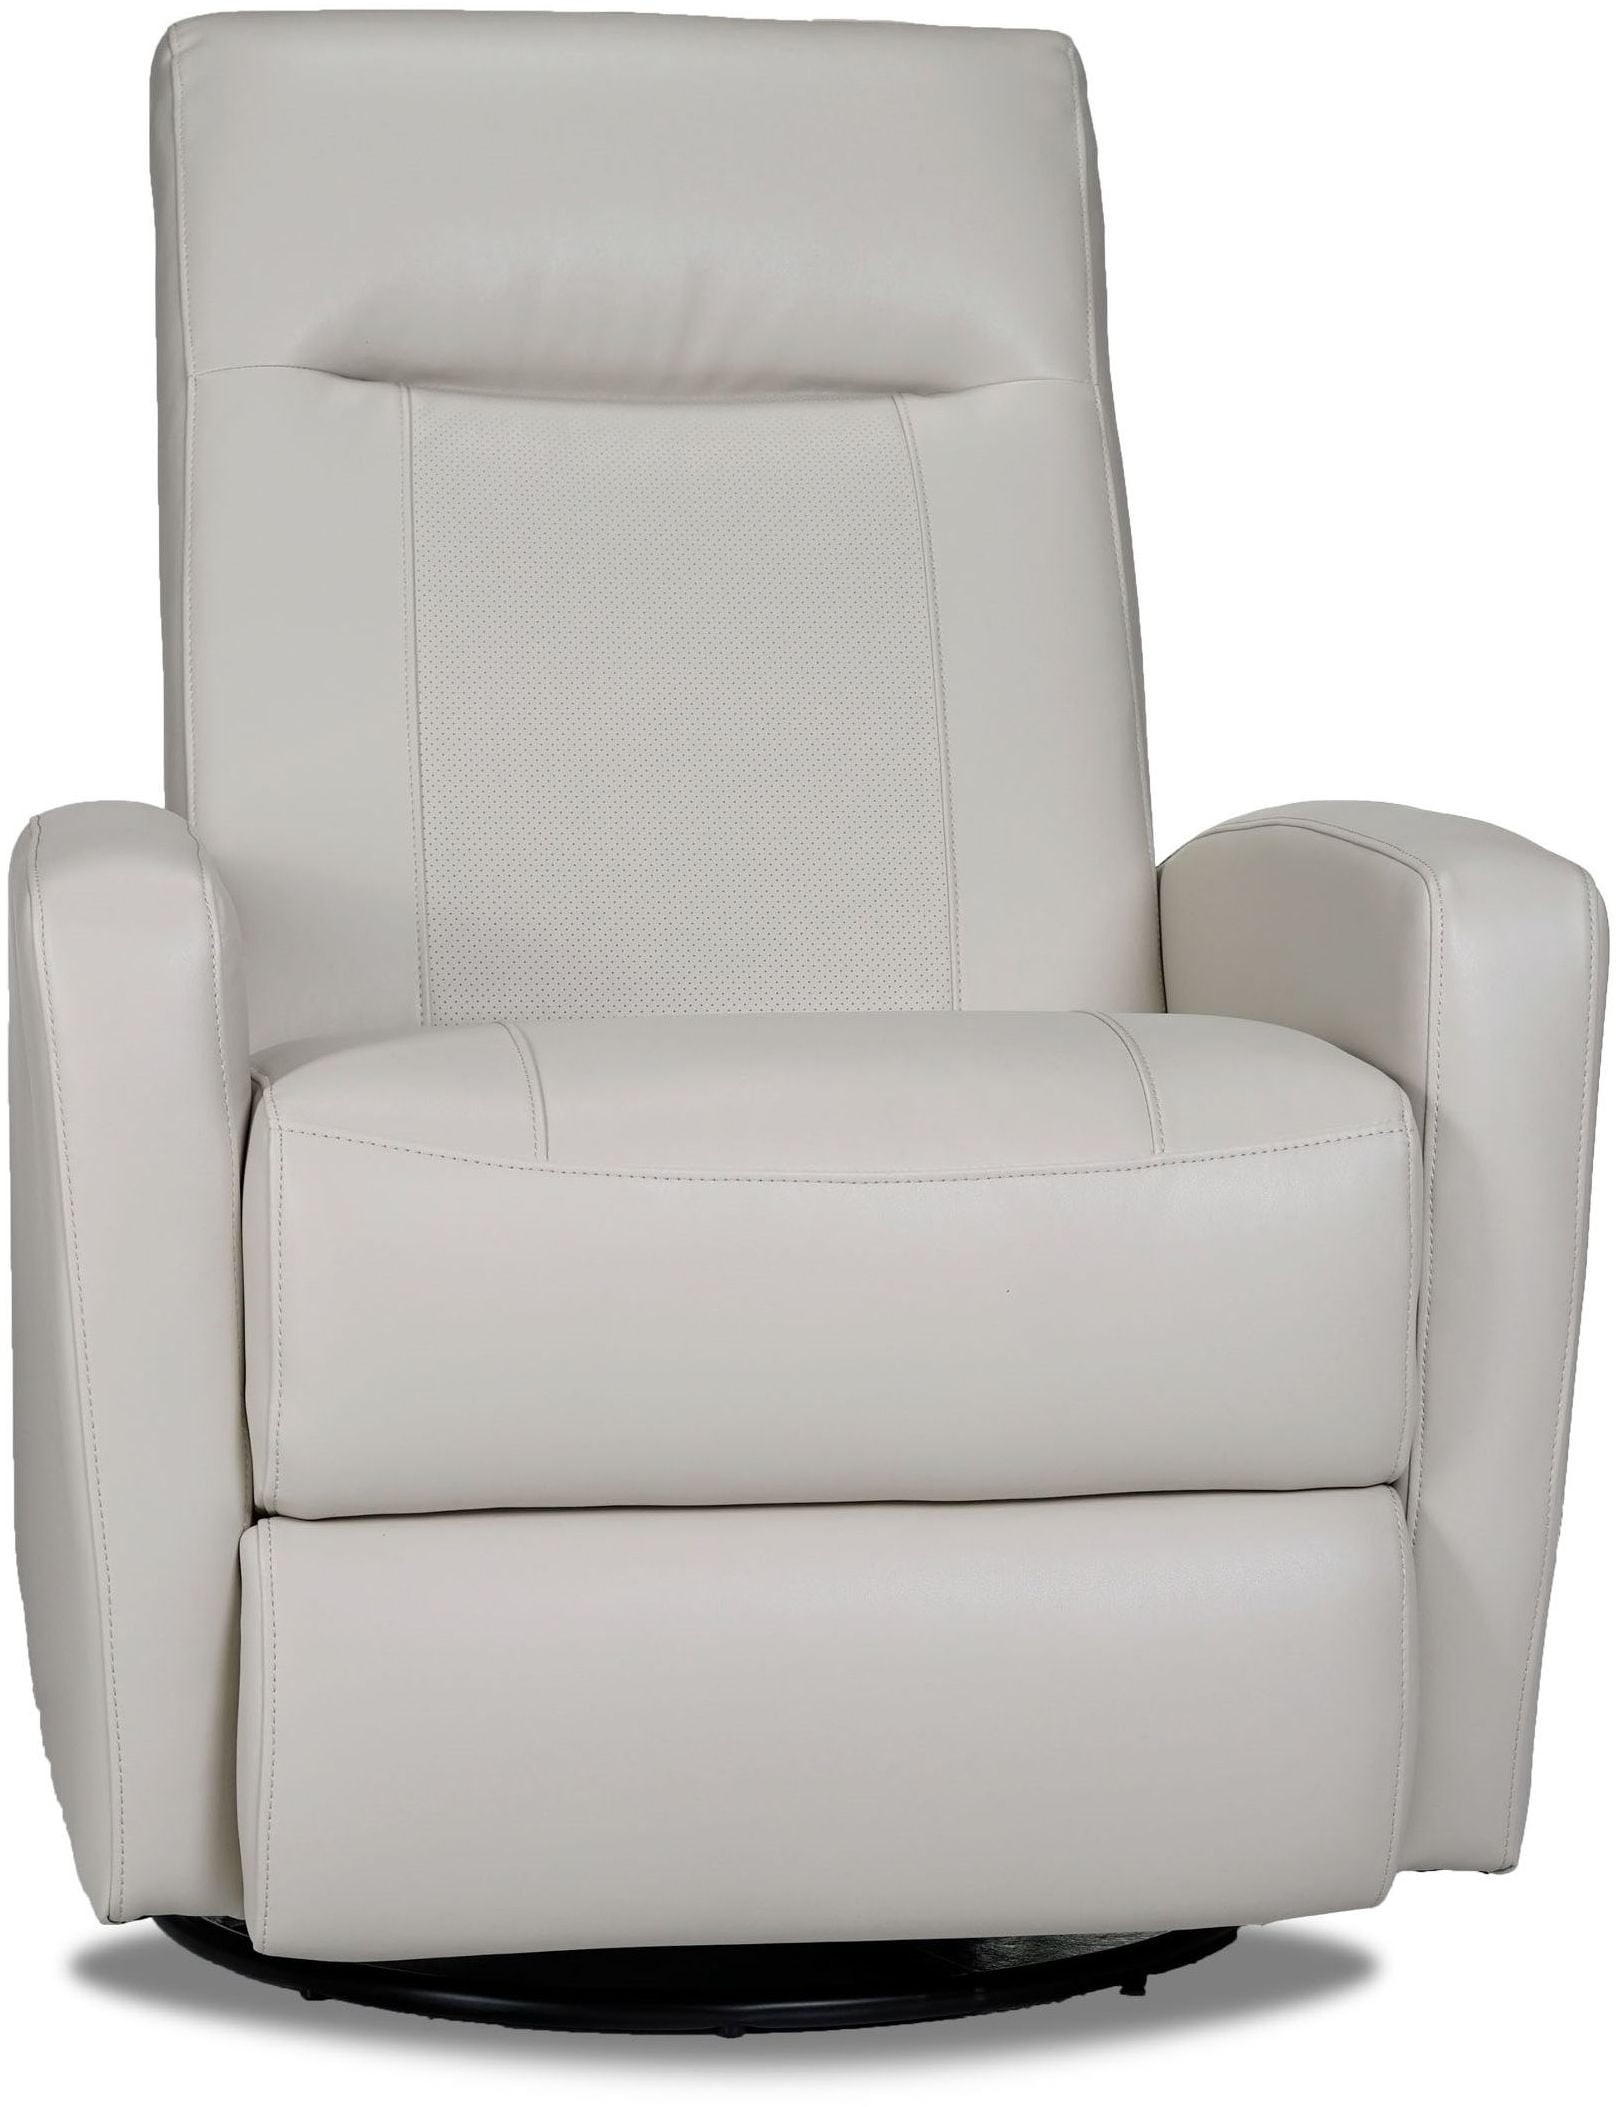 Stefan Aspen Taupe Swivel Glider Recliner From Opulence Home Within Aspen Swivel Chairs (View 7 of 25)